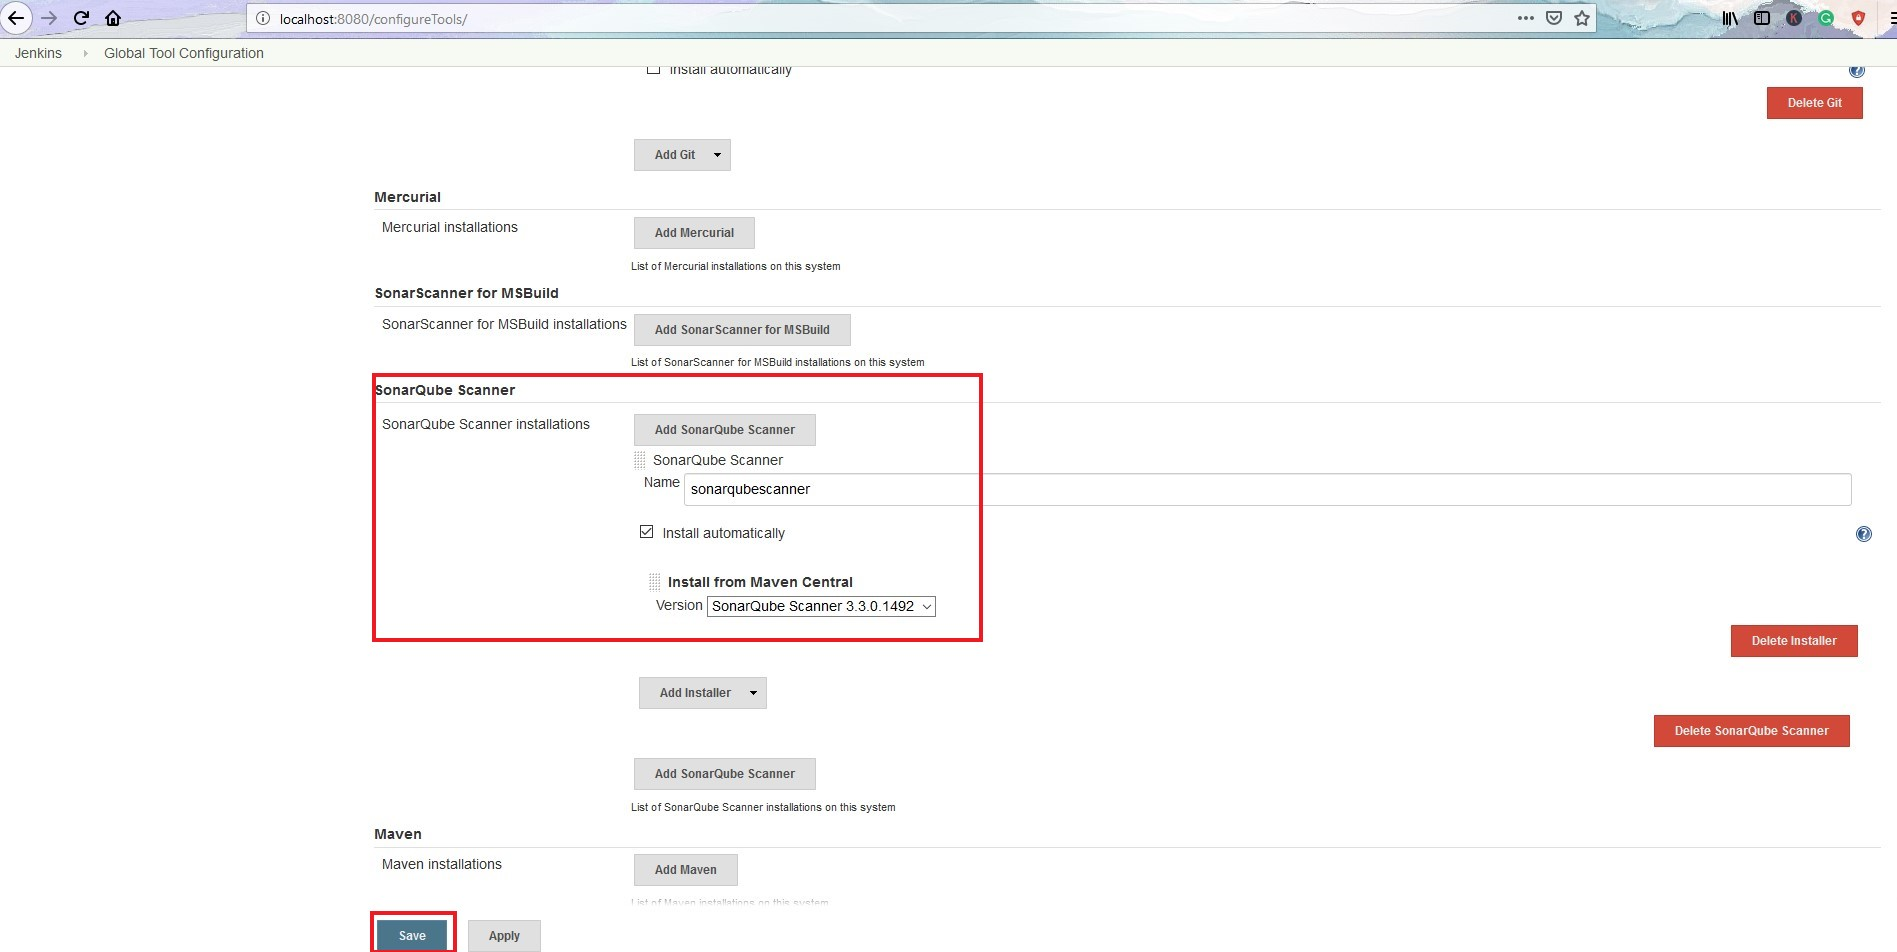 SonarQube Scanner Configuration in Jenkins